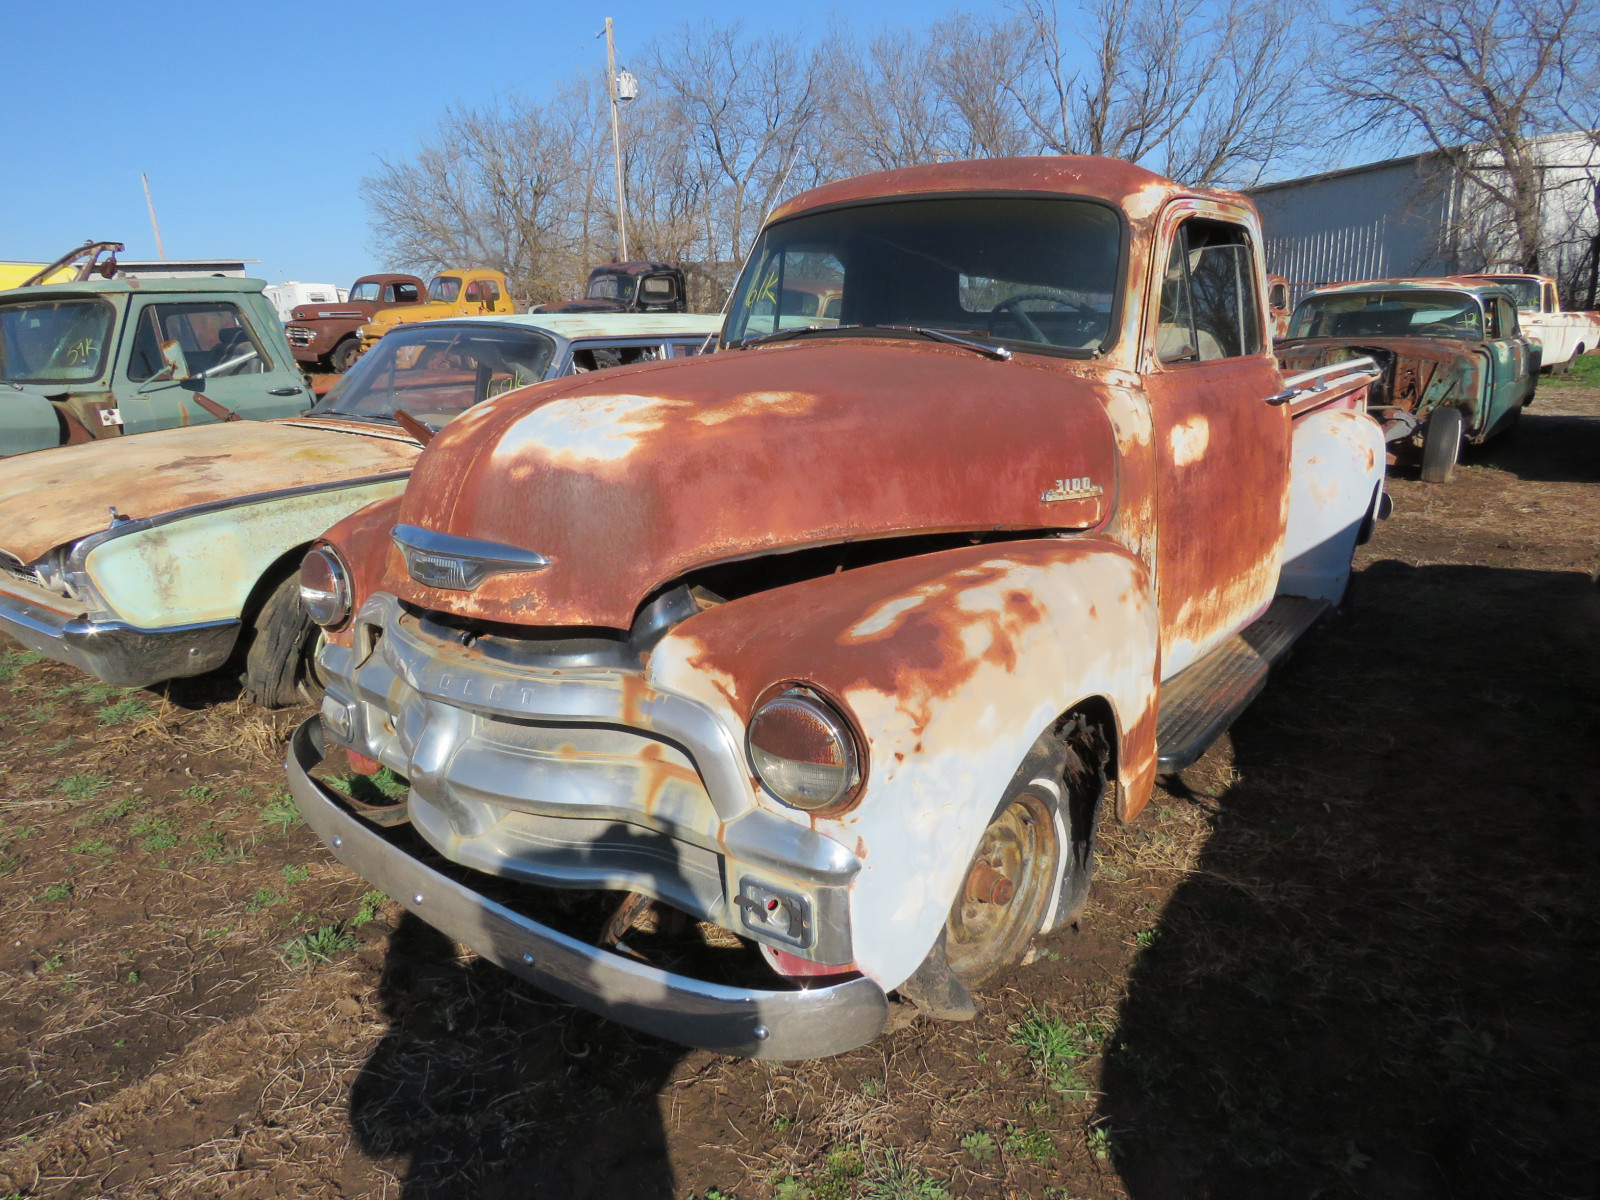 1954 Chevrolet Stepside Pickup - Image 3